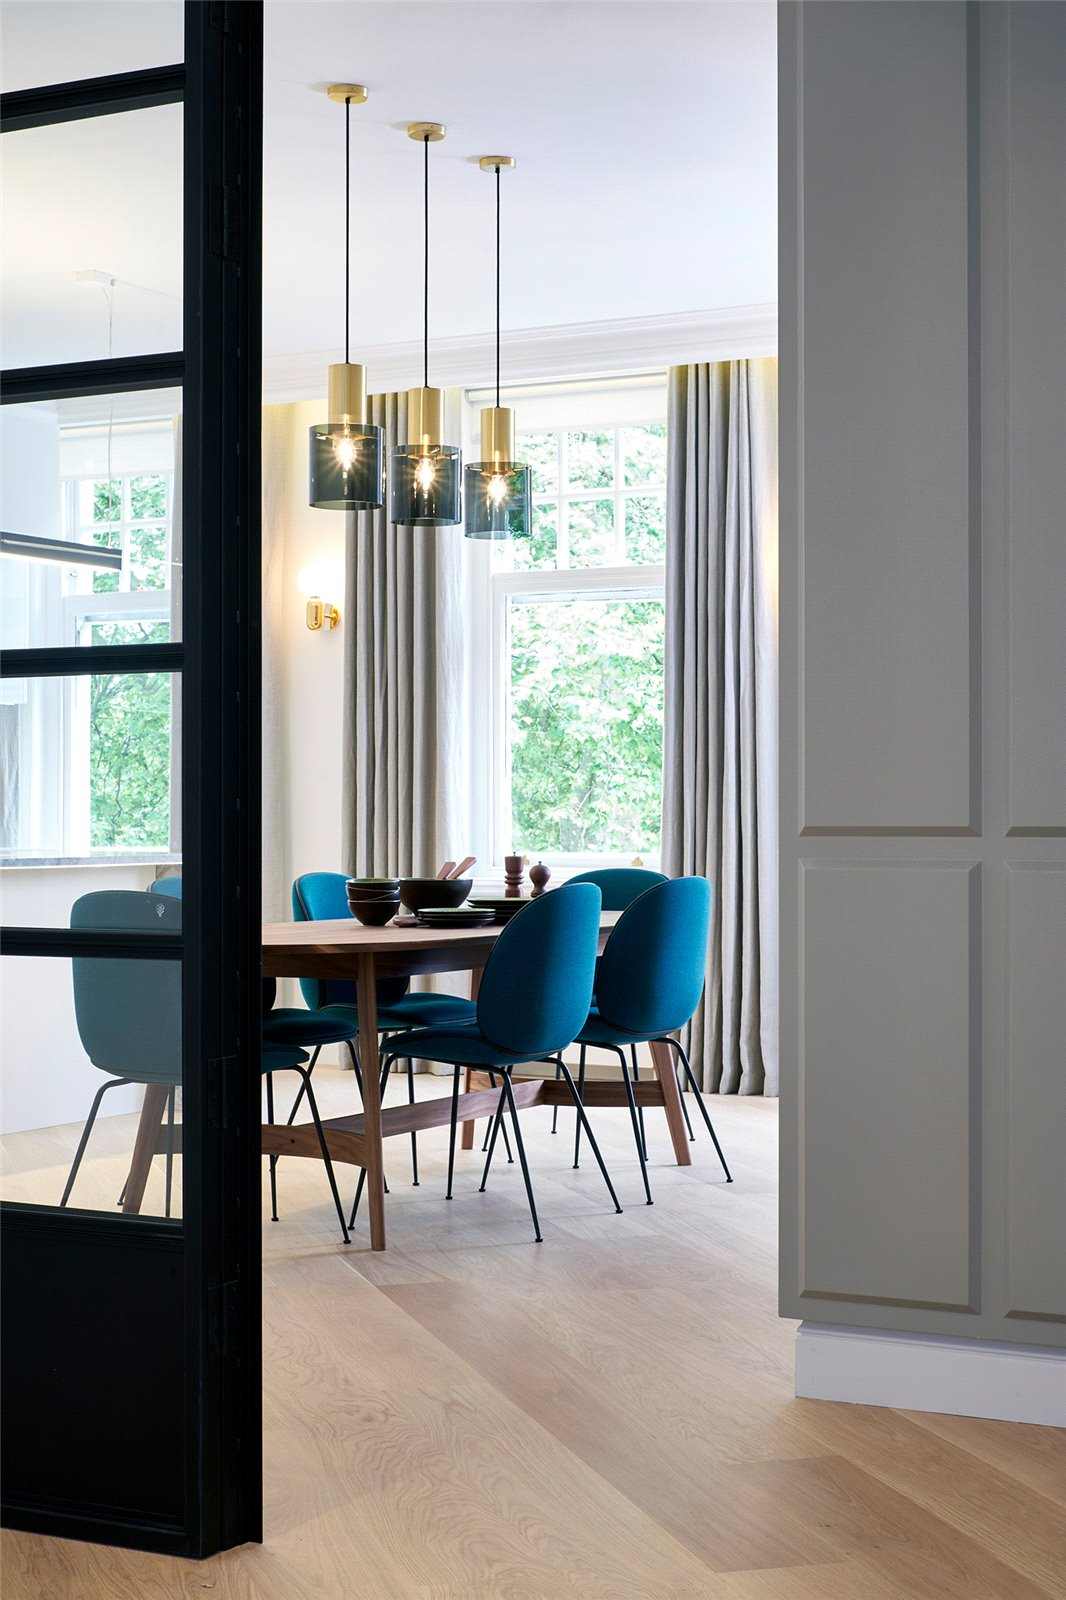 Apartment for Sale at Embankment Gardens, Chelsea, London, SW3 Embankment Gardens, Chelsea, London, SW3